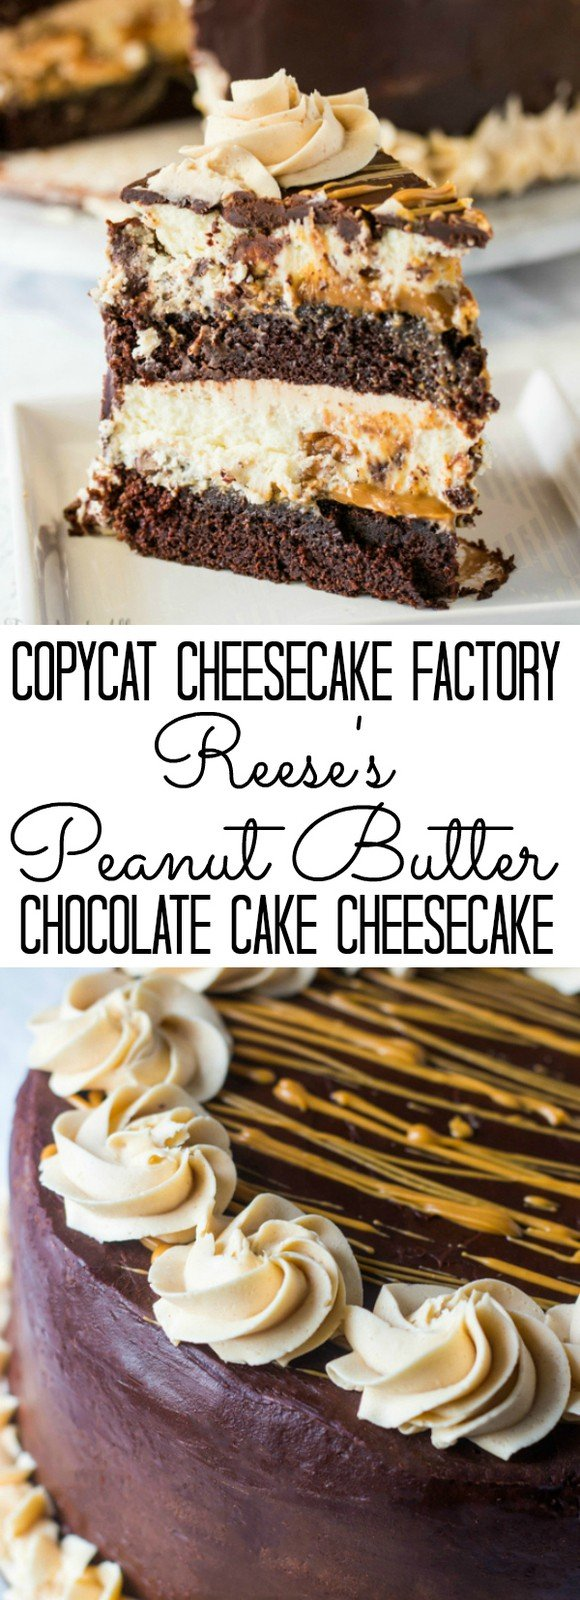 Chocolate Peanut Butter Slow Cooker Cake